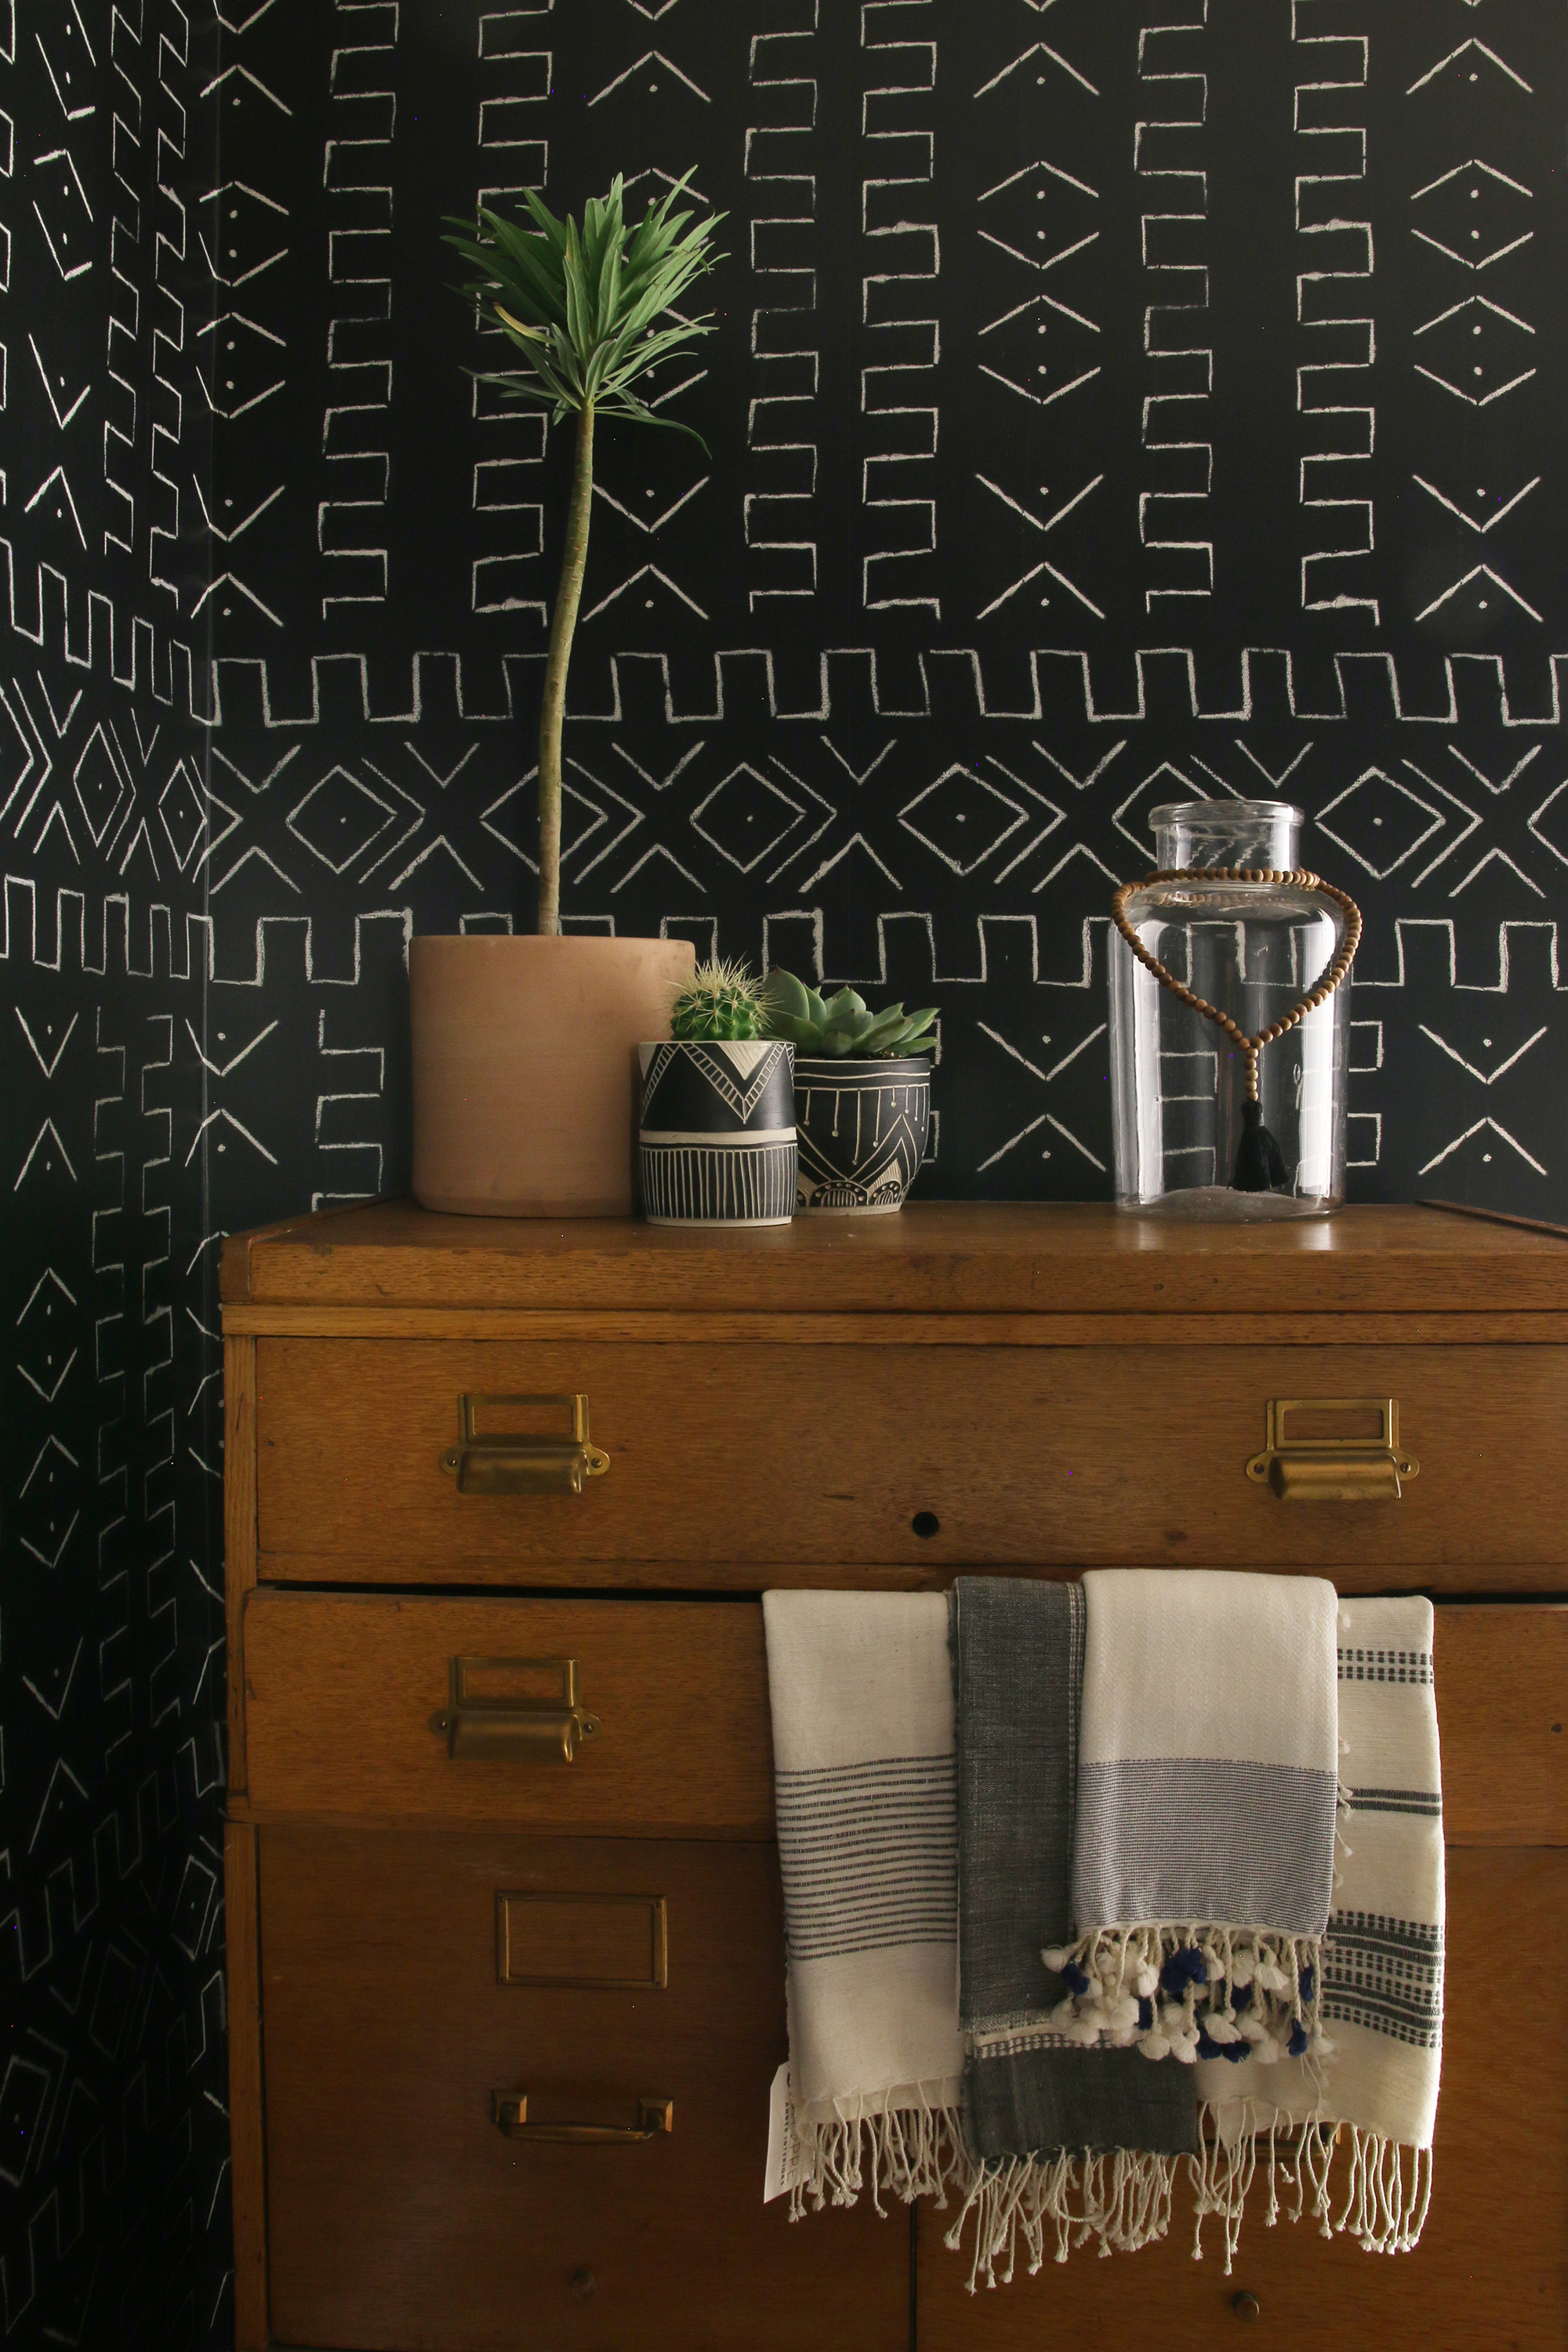 Planters and hand towels designed by Lewis further infuse the room with varying textures. The tribal-print wallpaper and a vintage dresser team up for the kind of signature and eclectic look her clients covet.